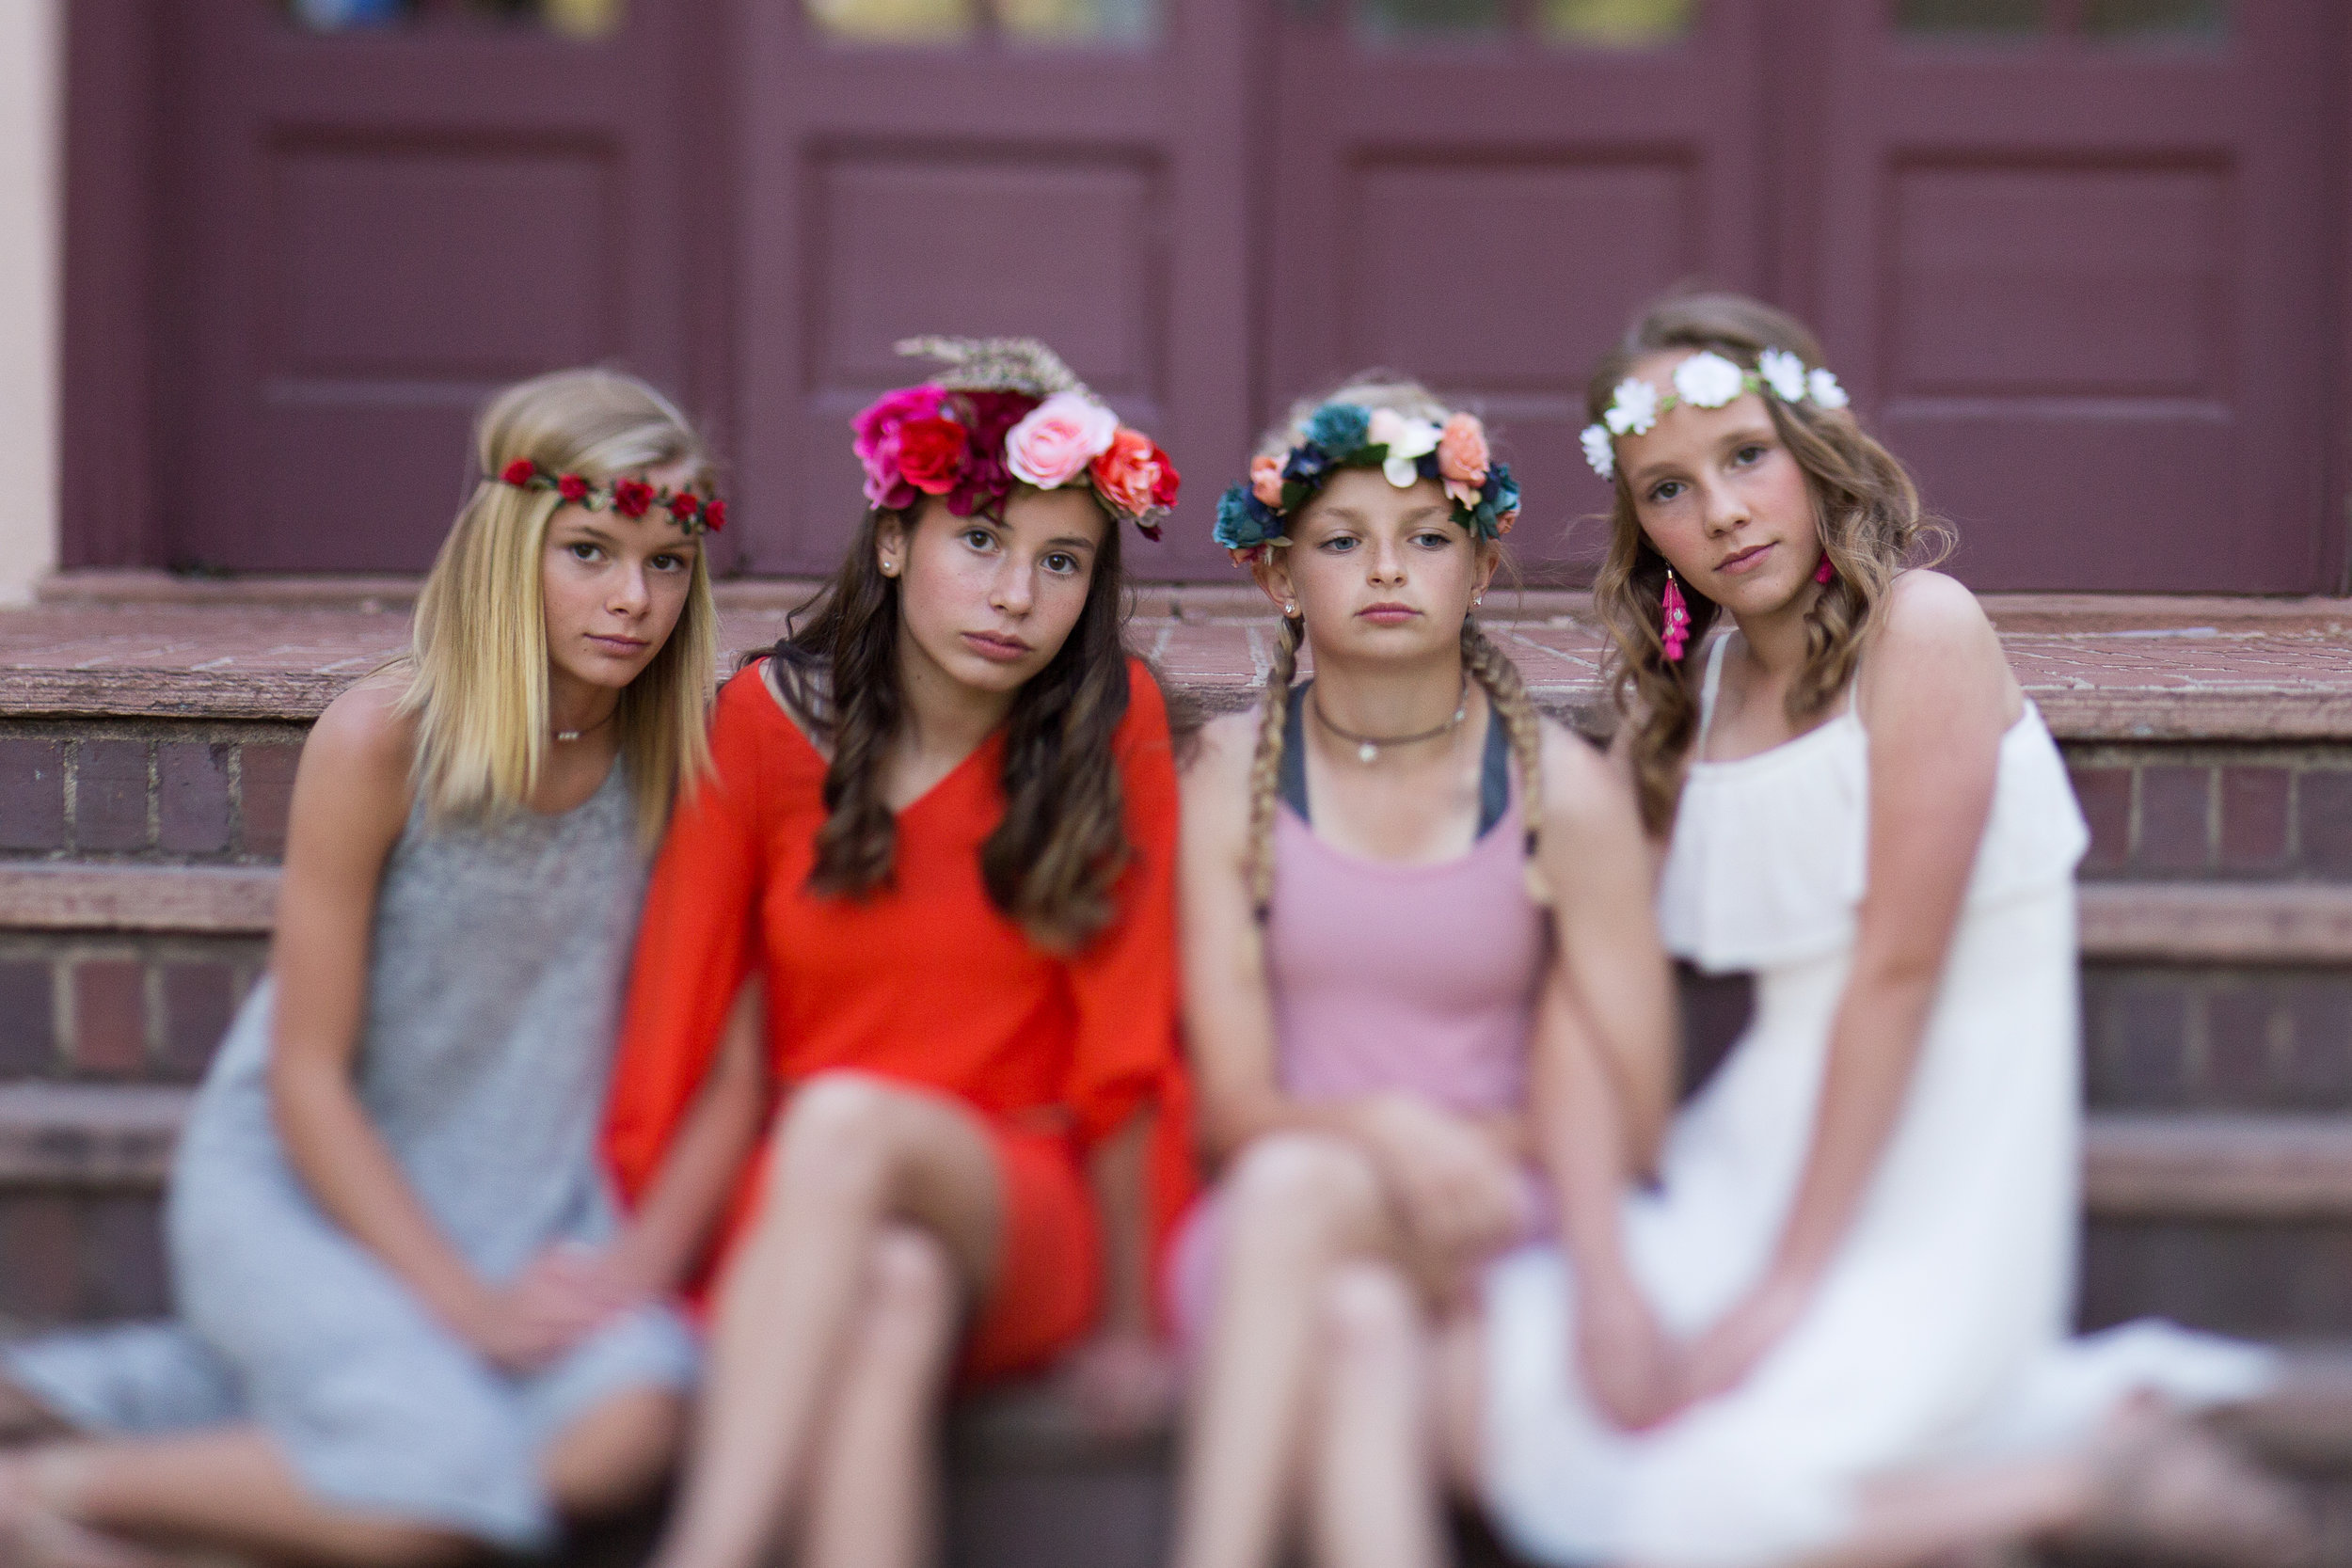 Colorado Springs Senior and Tween Photographer | Colorado  Springs Tween and Senior Photography | Stacy Carosa Photography | Middle school friends photo session with floral crowns | tilt shift lens